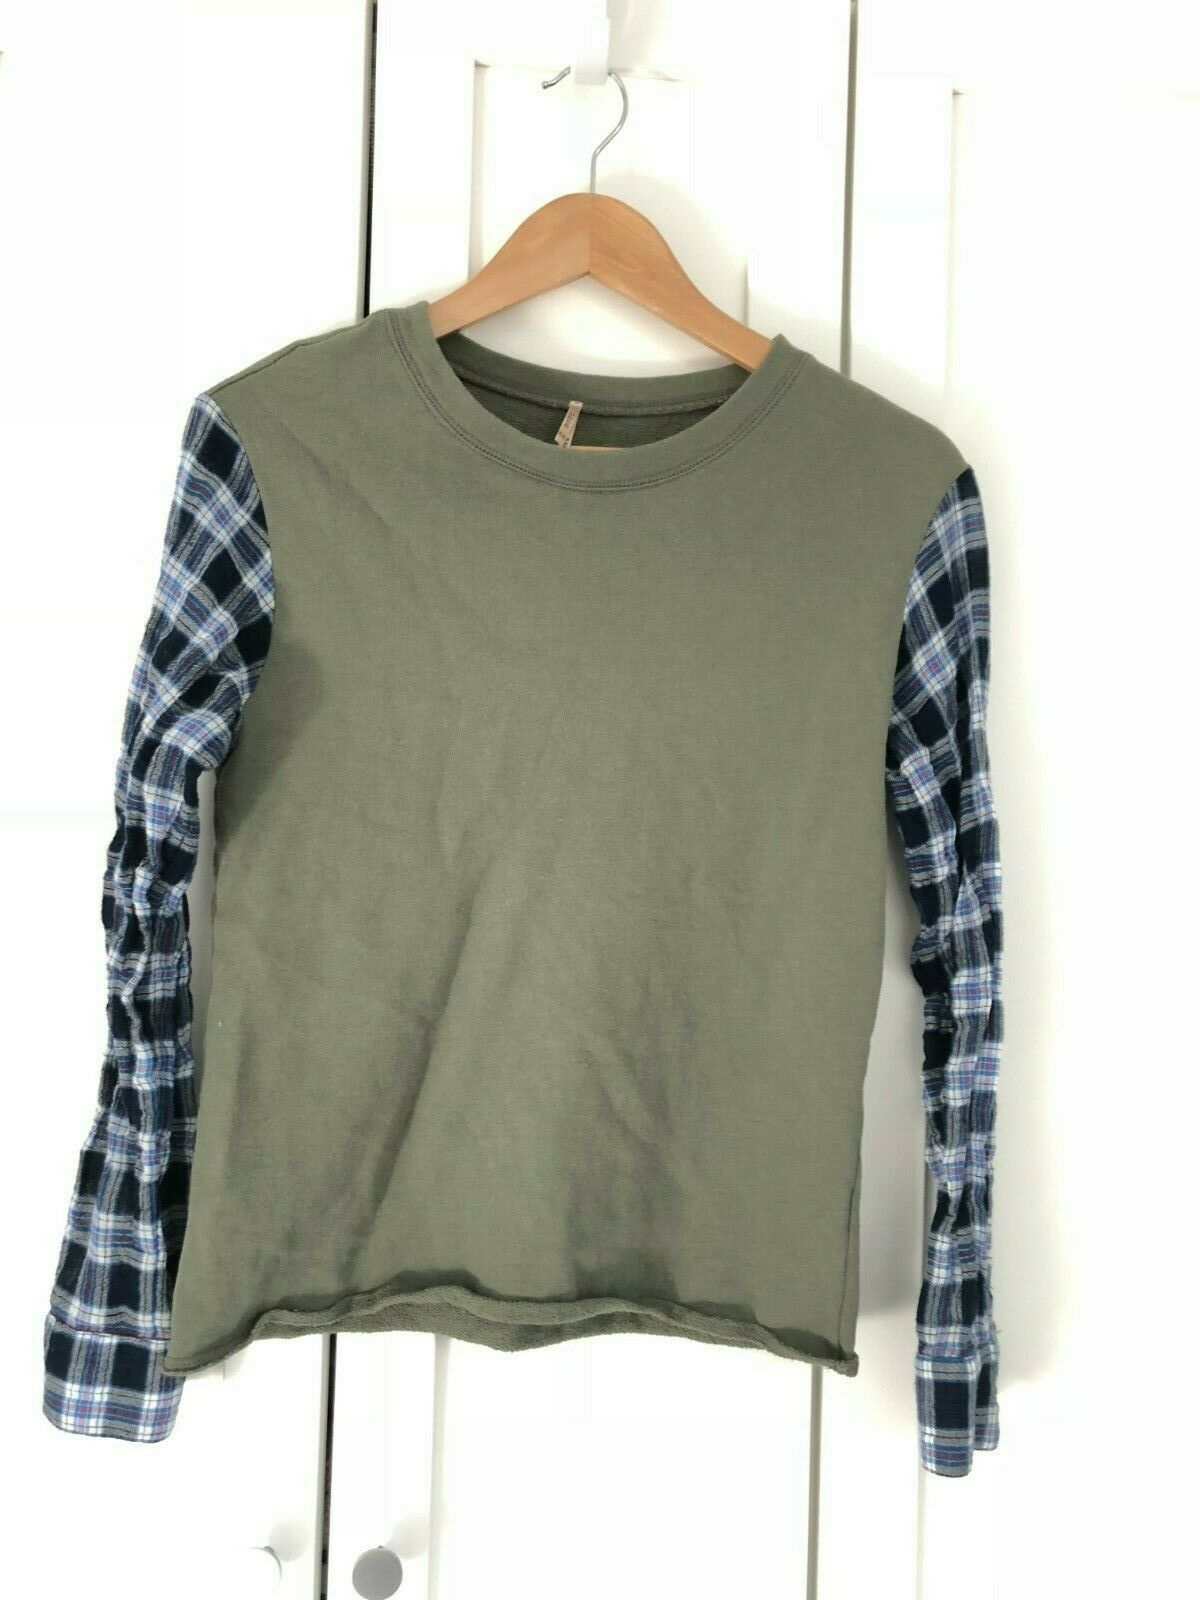 PETE Made in America Knit Top Blouse Olive Army Grün Blau Check Long Sleeve XS